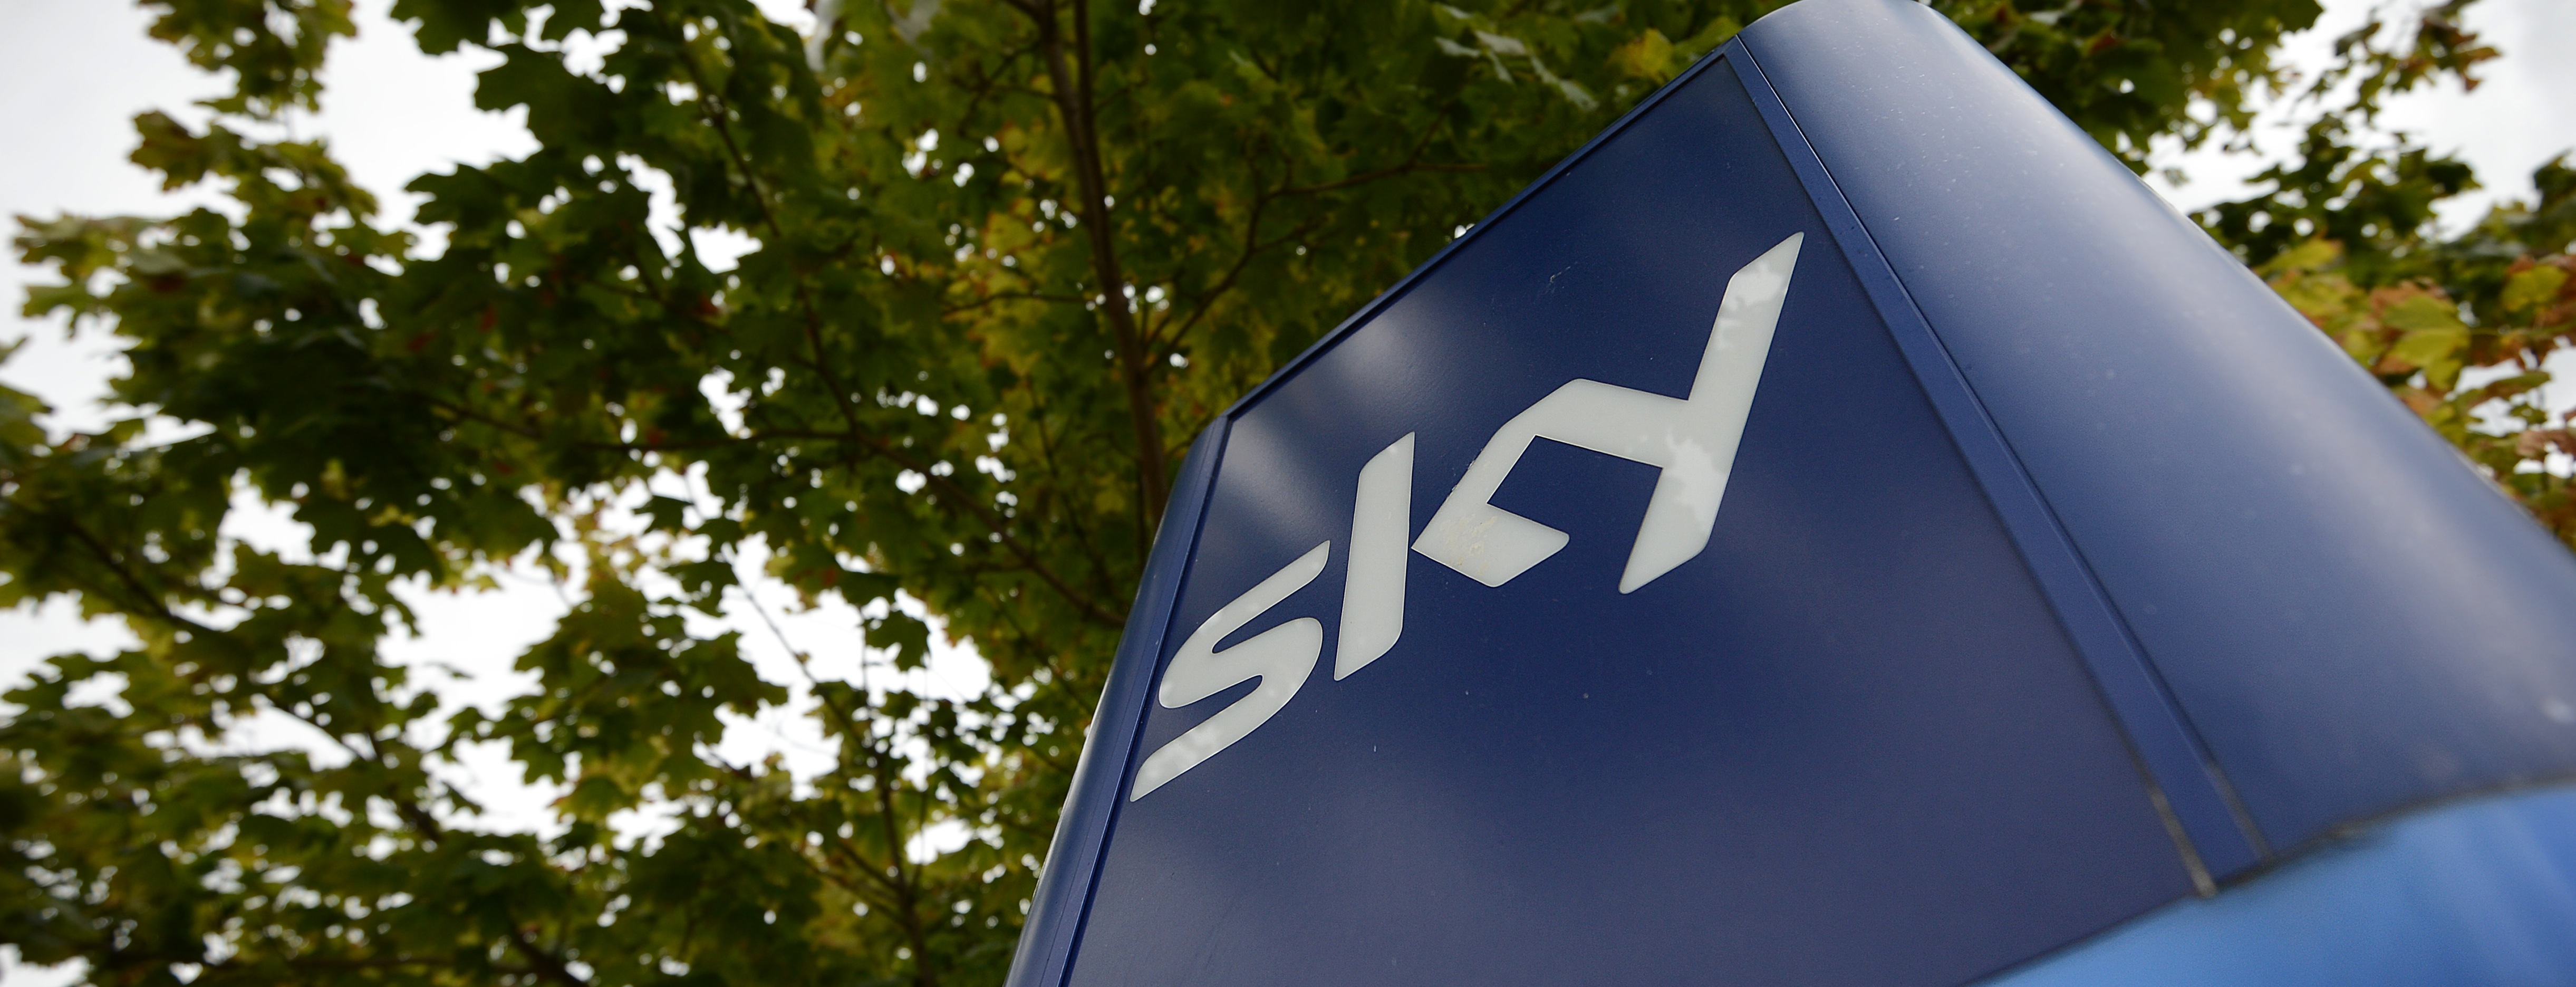 BSkyB Inks £49m Deal With Virgin Media To Improve Network